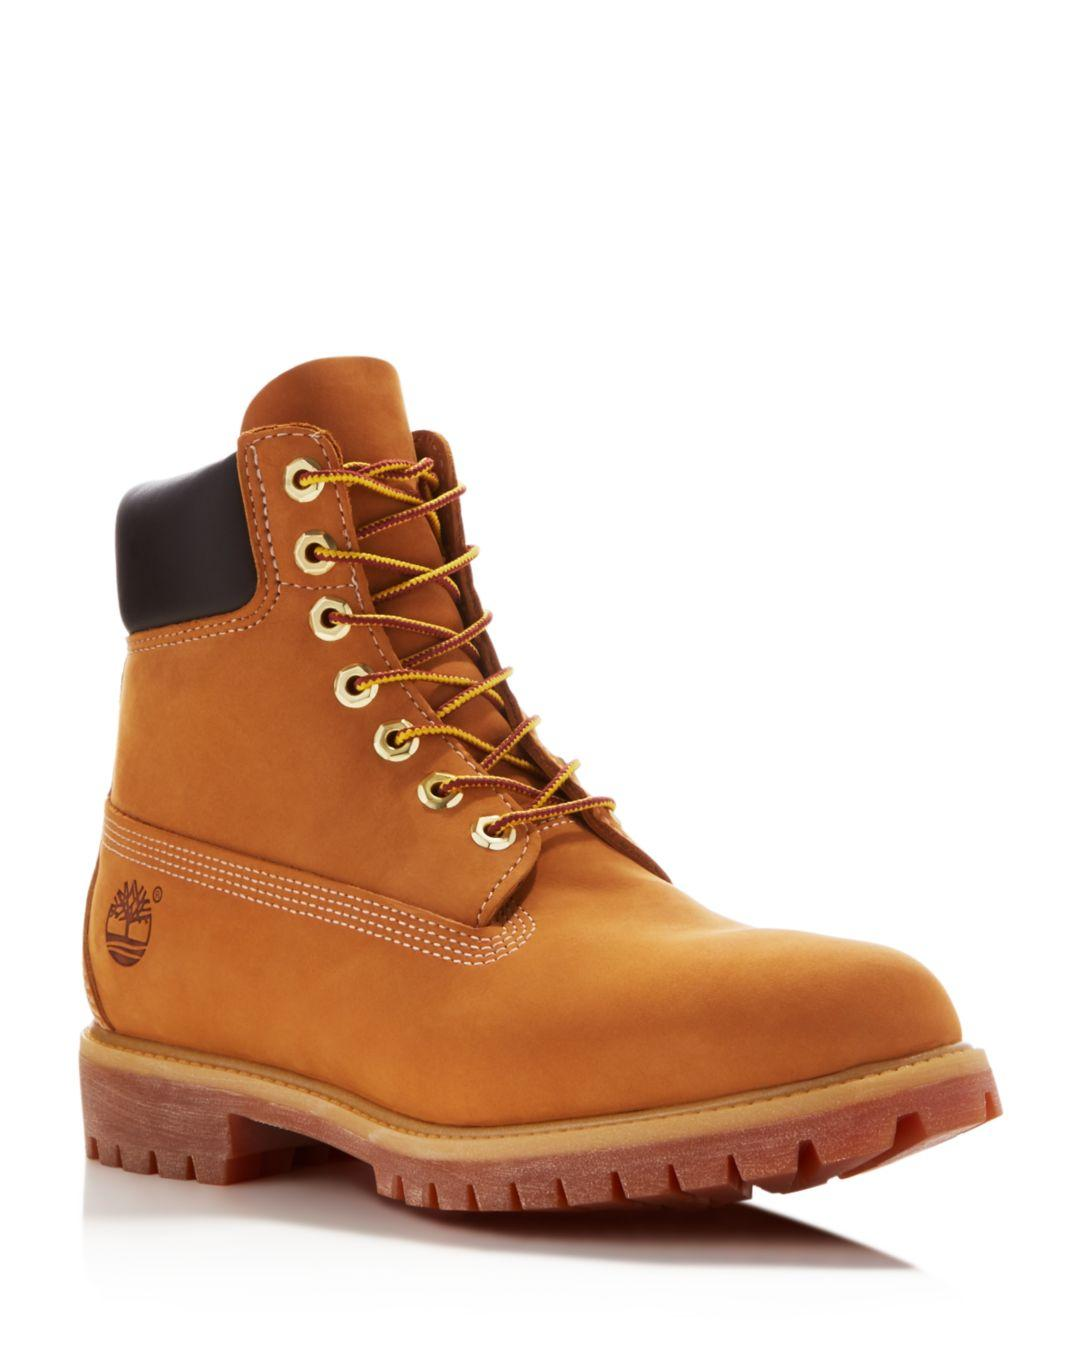 6bb11c03dd4c3 Timberland Men's Icon Waterproof Boots in Natural for Men - Lyst